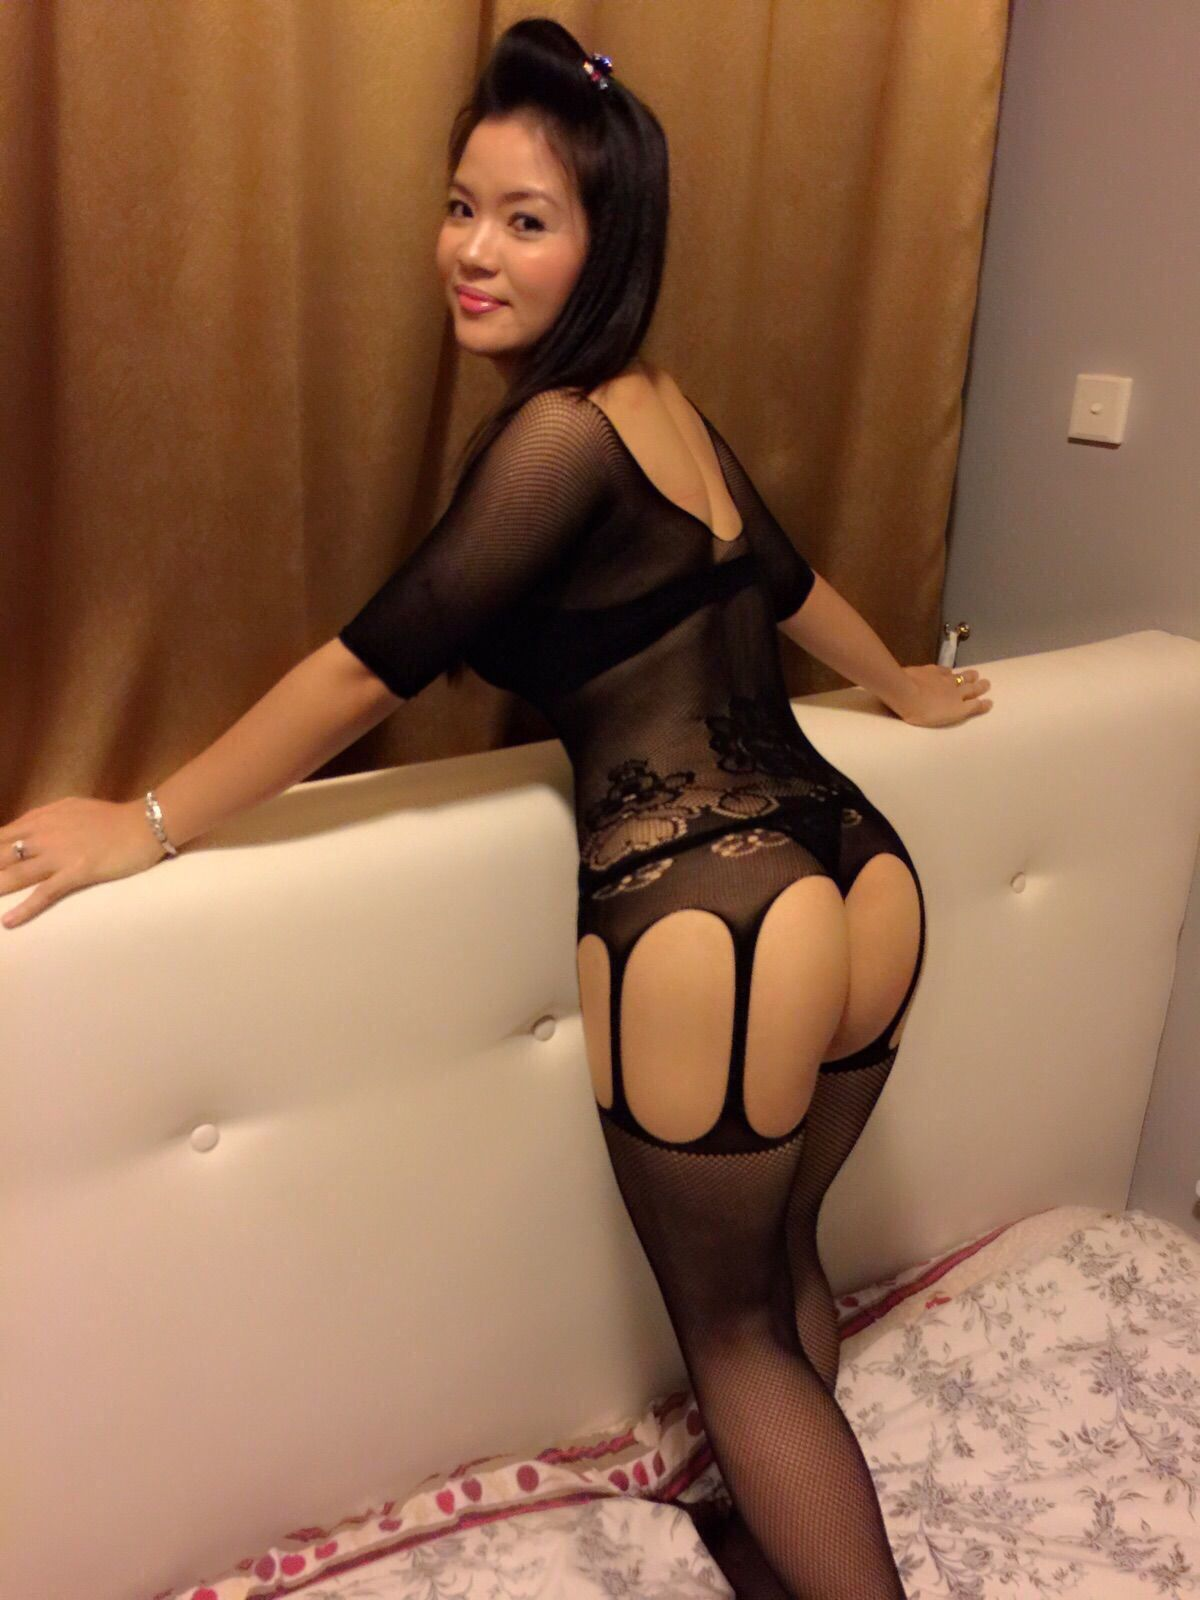 thai massage sydjylland female escorts online